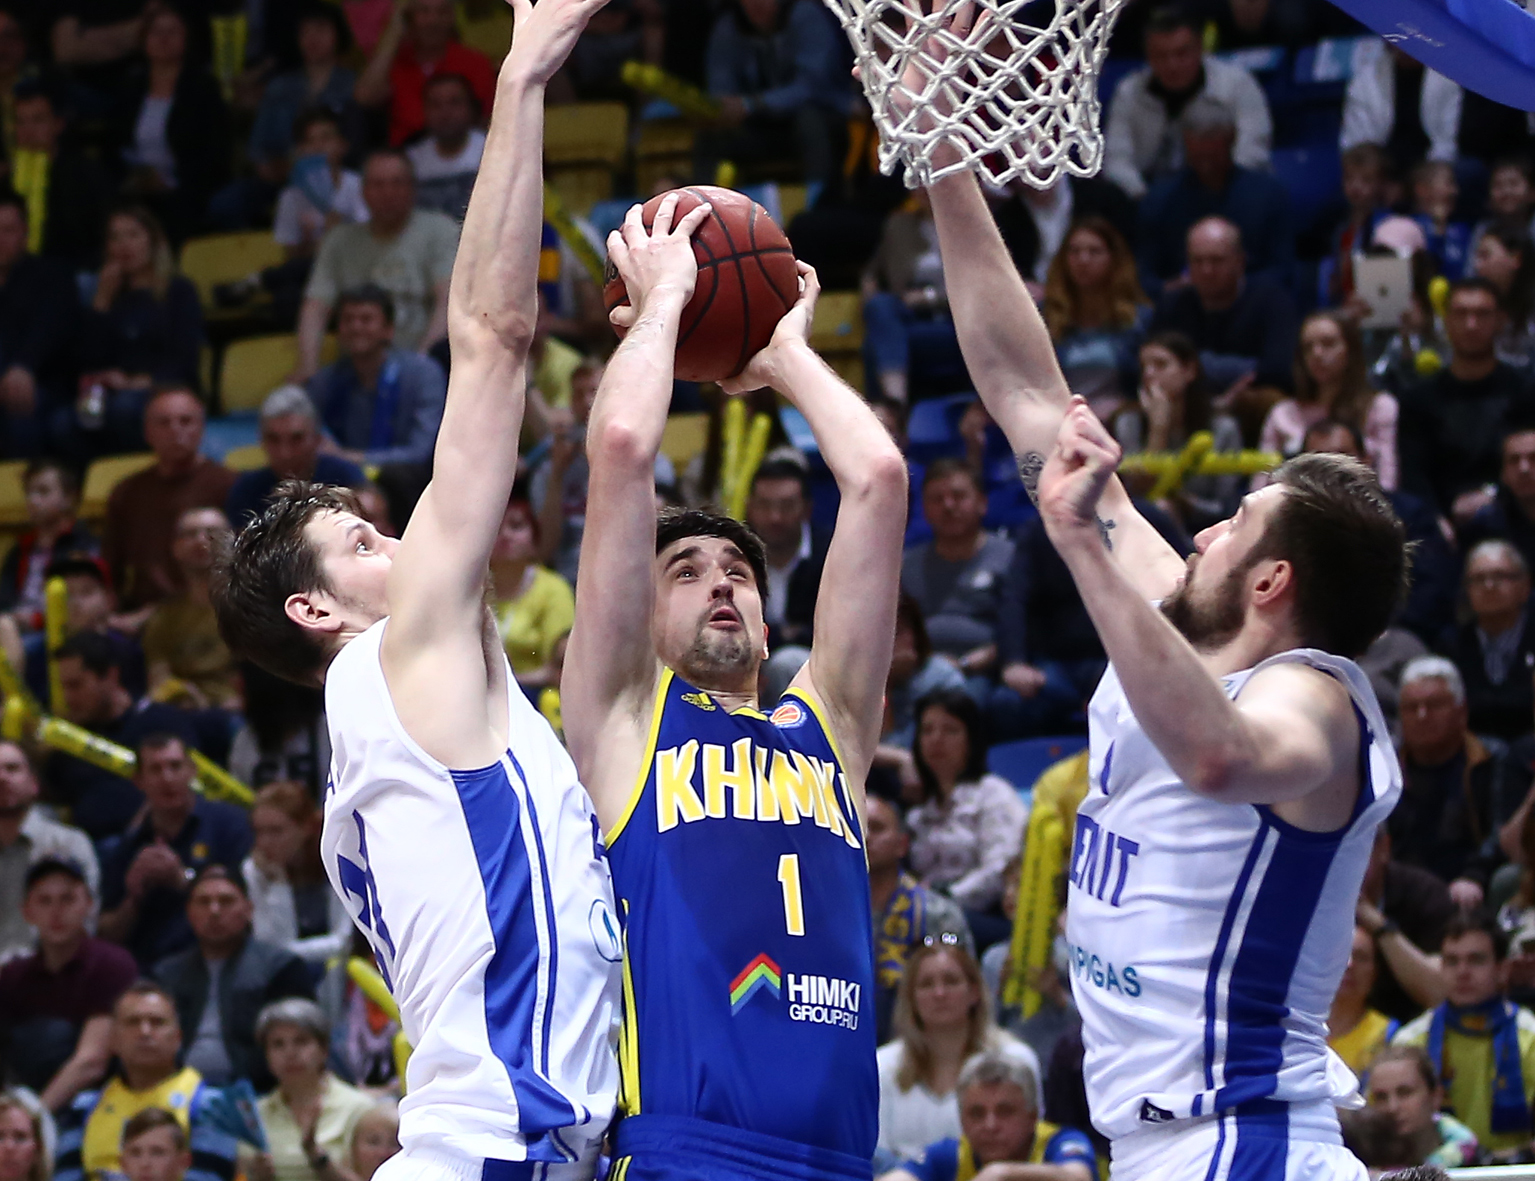 Khimki Answers Zenit